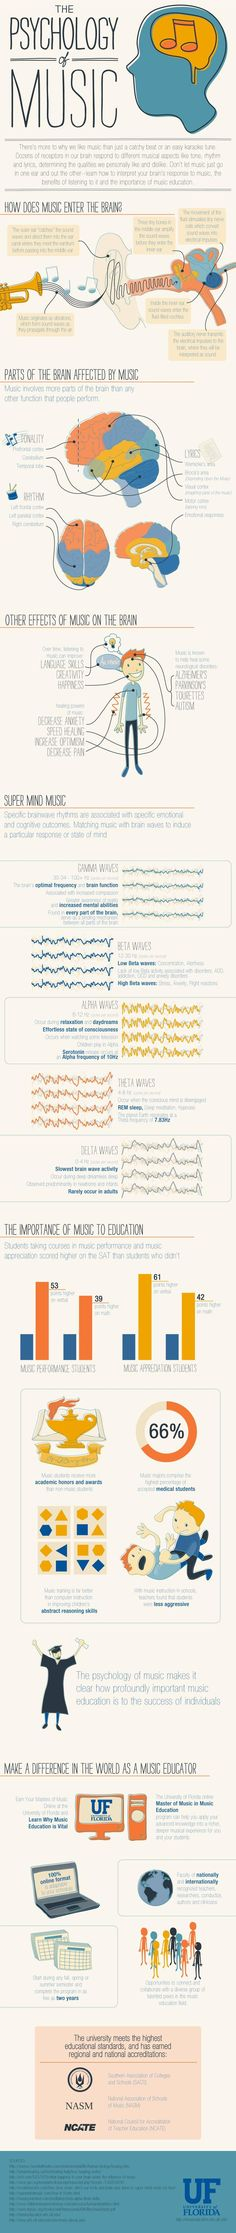 The Psychology of Music #Infographics                                                                                                                                                                                 More